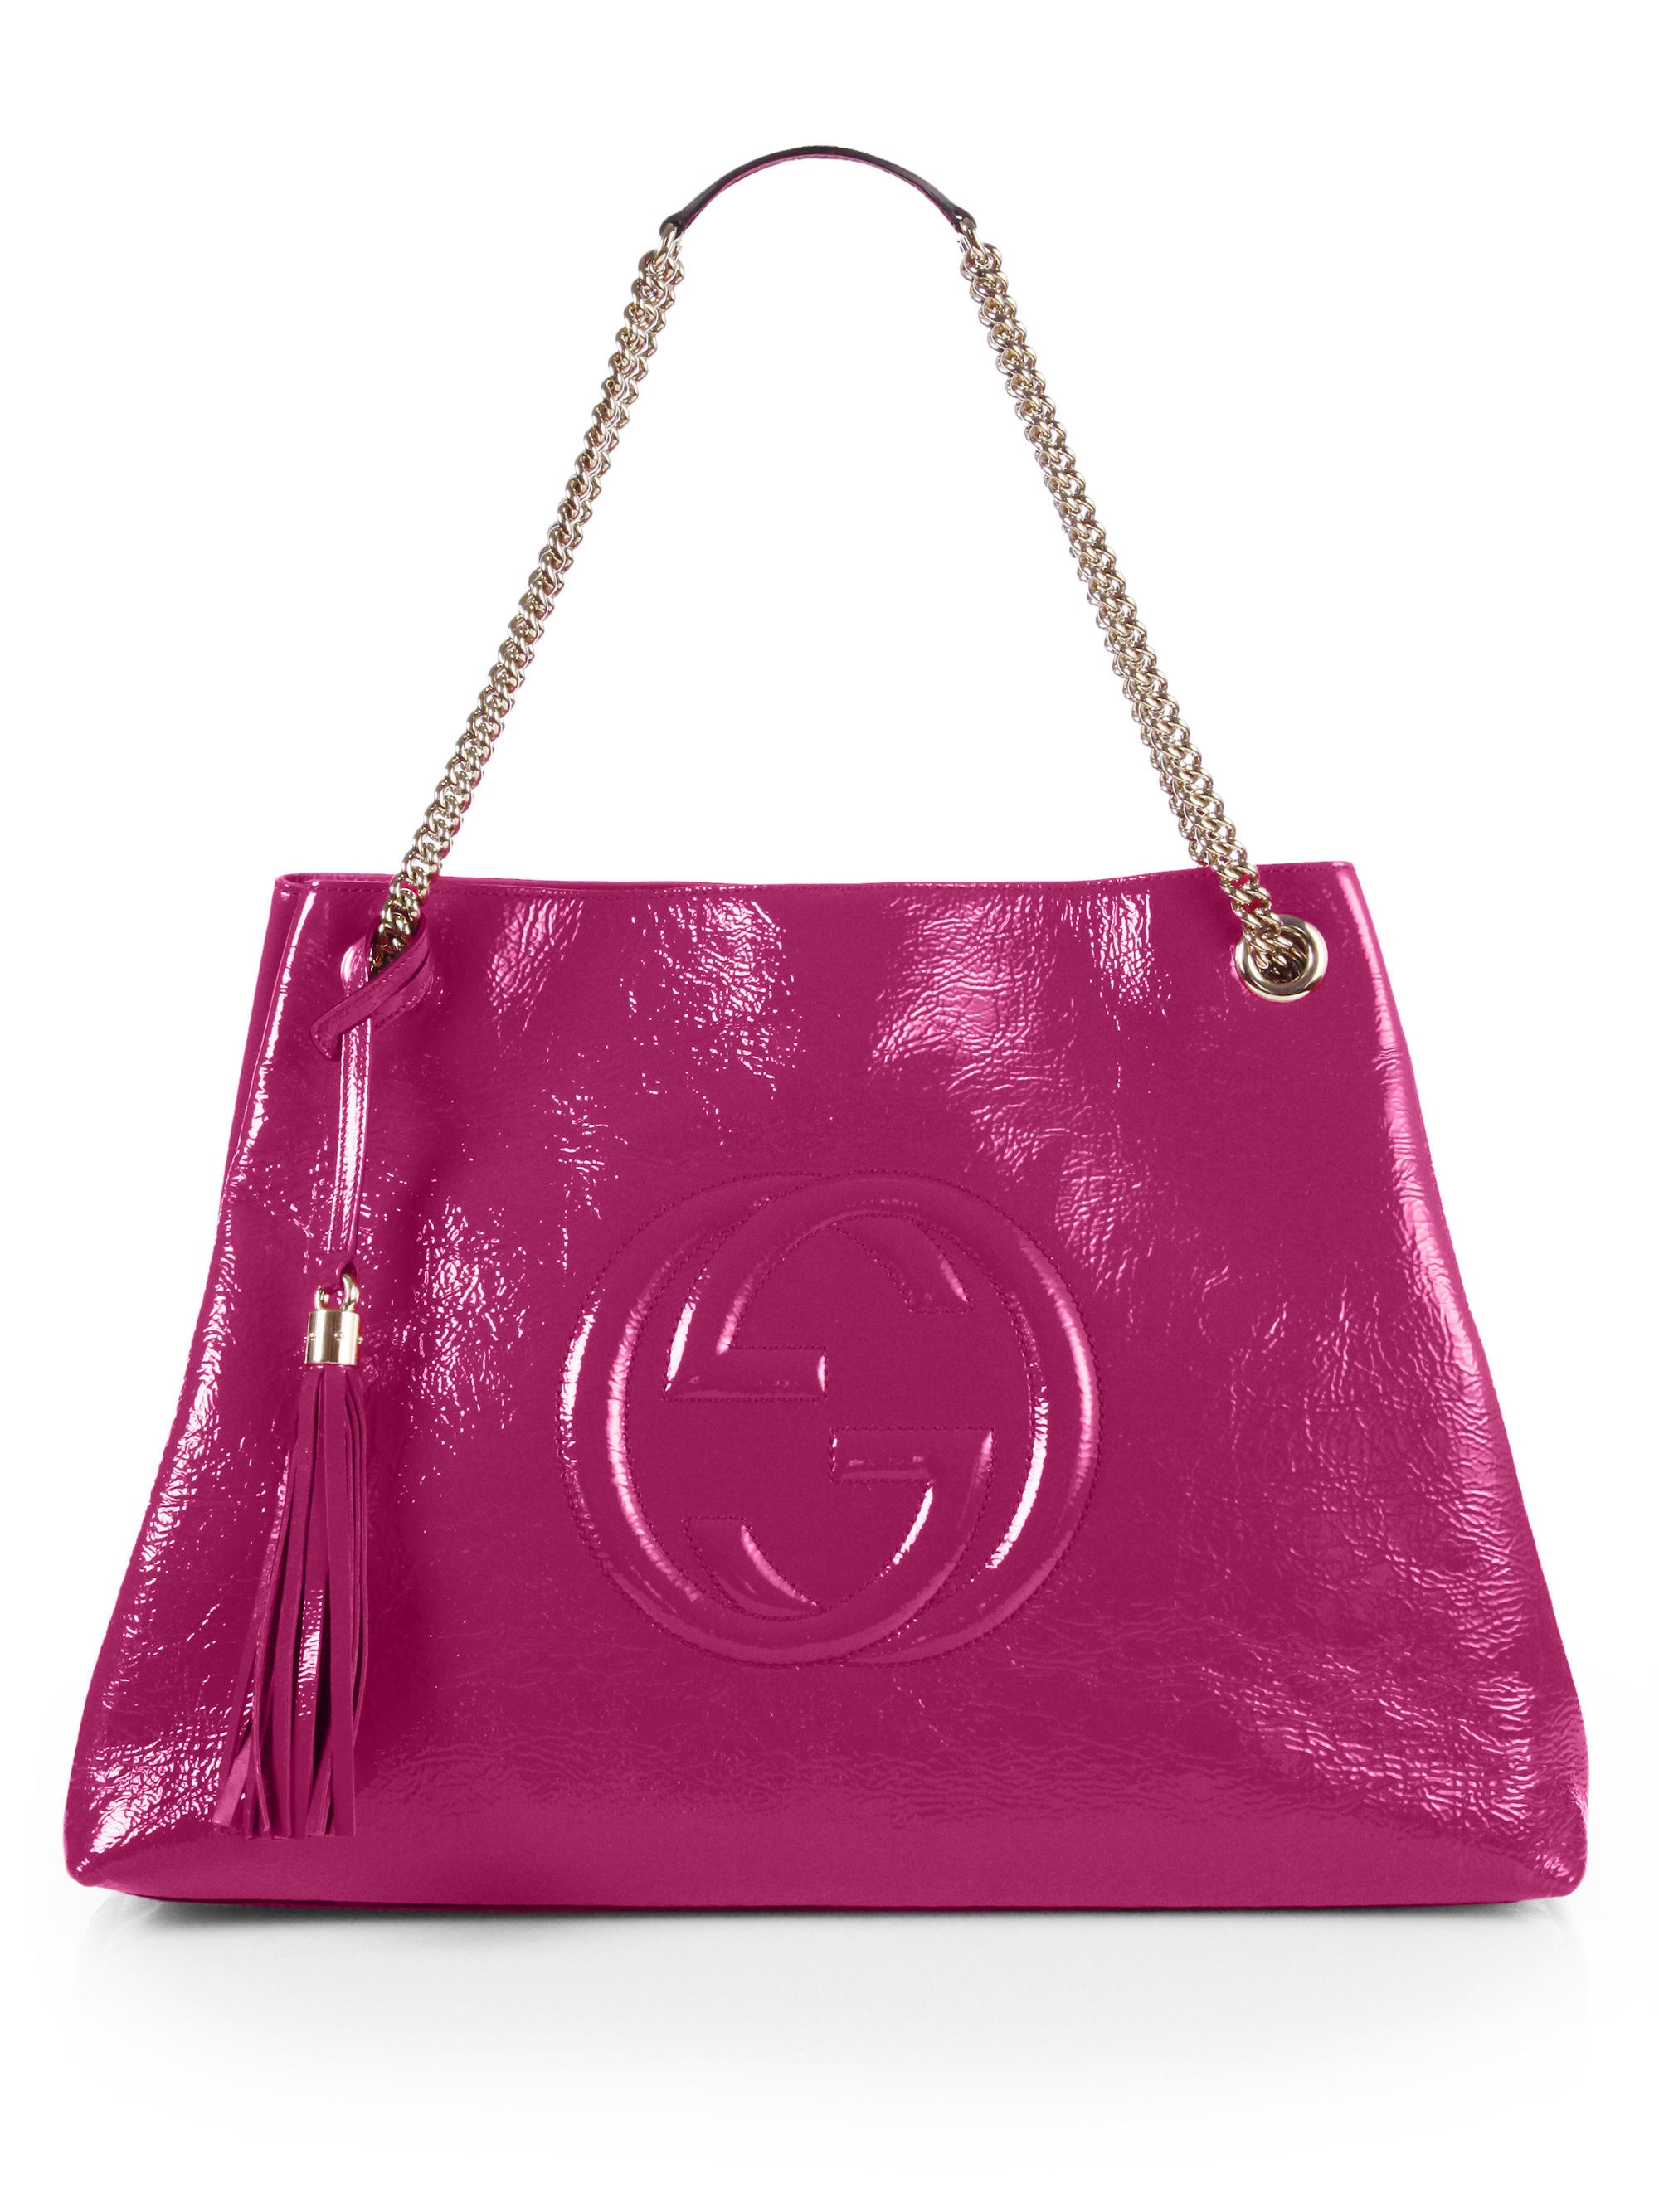 Gucci Soho Patent Leather Shoulder Bag in Pink (BRIGHT PINK)  Lyst